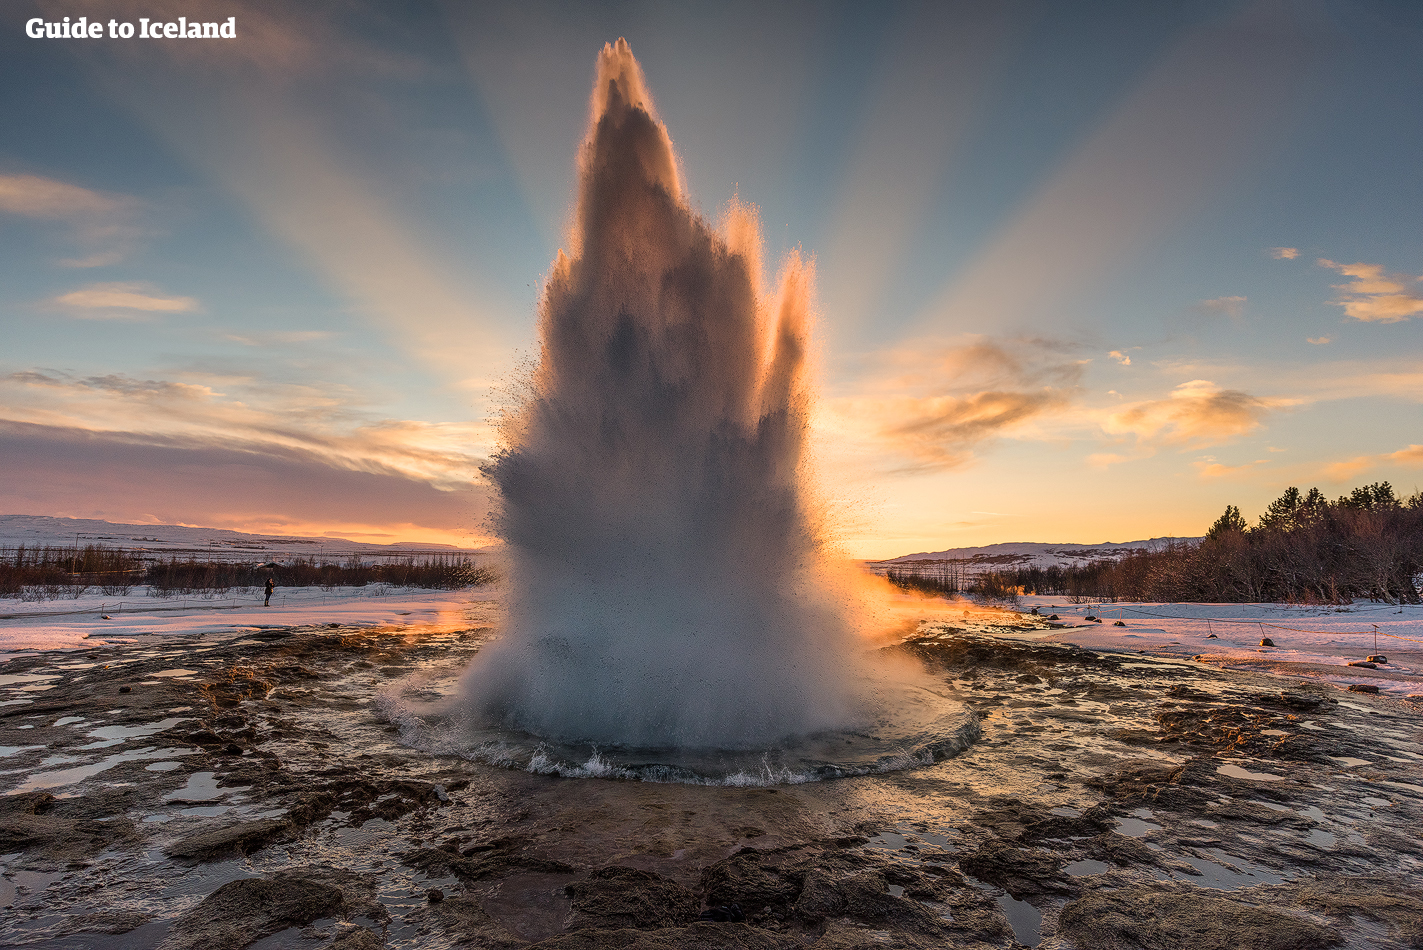 Strokkur is an erupting hot spring on the Golden Circle besides the now dormant Geysir.